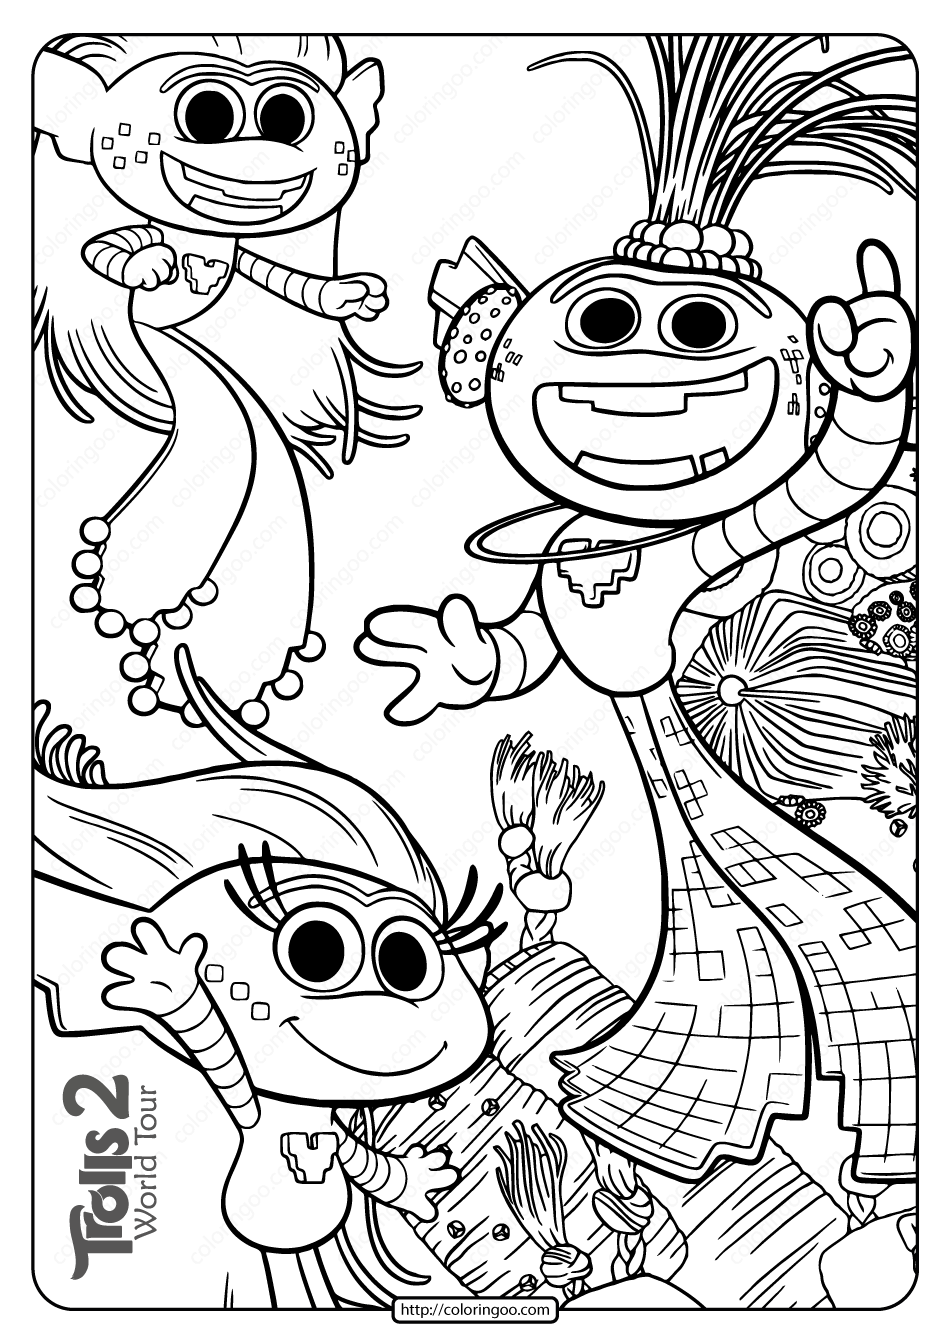 trolls coloring pages trolls movie coloring pages best coloring pages for kids trolls coloring pages